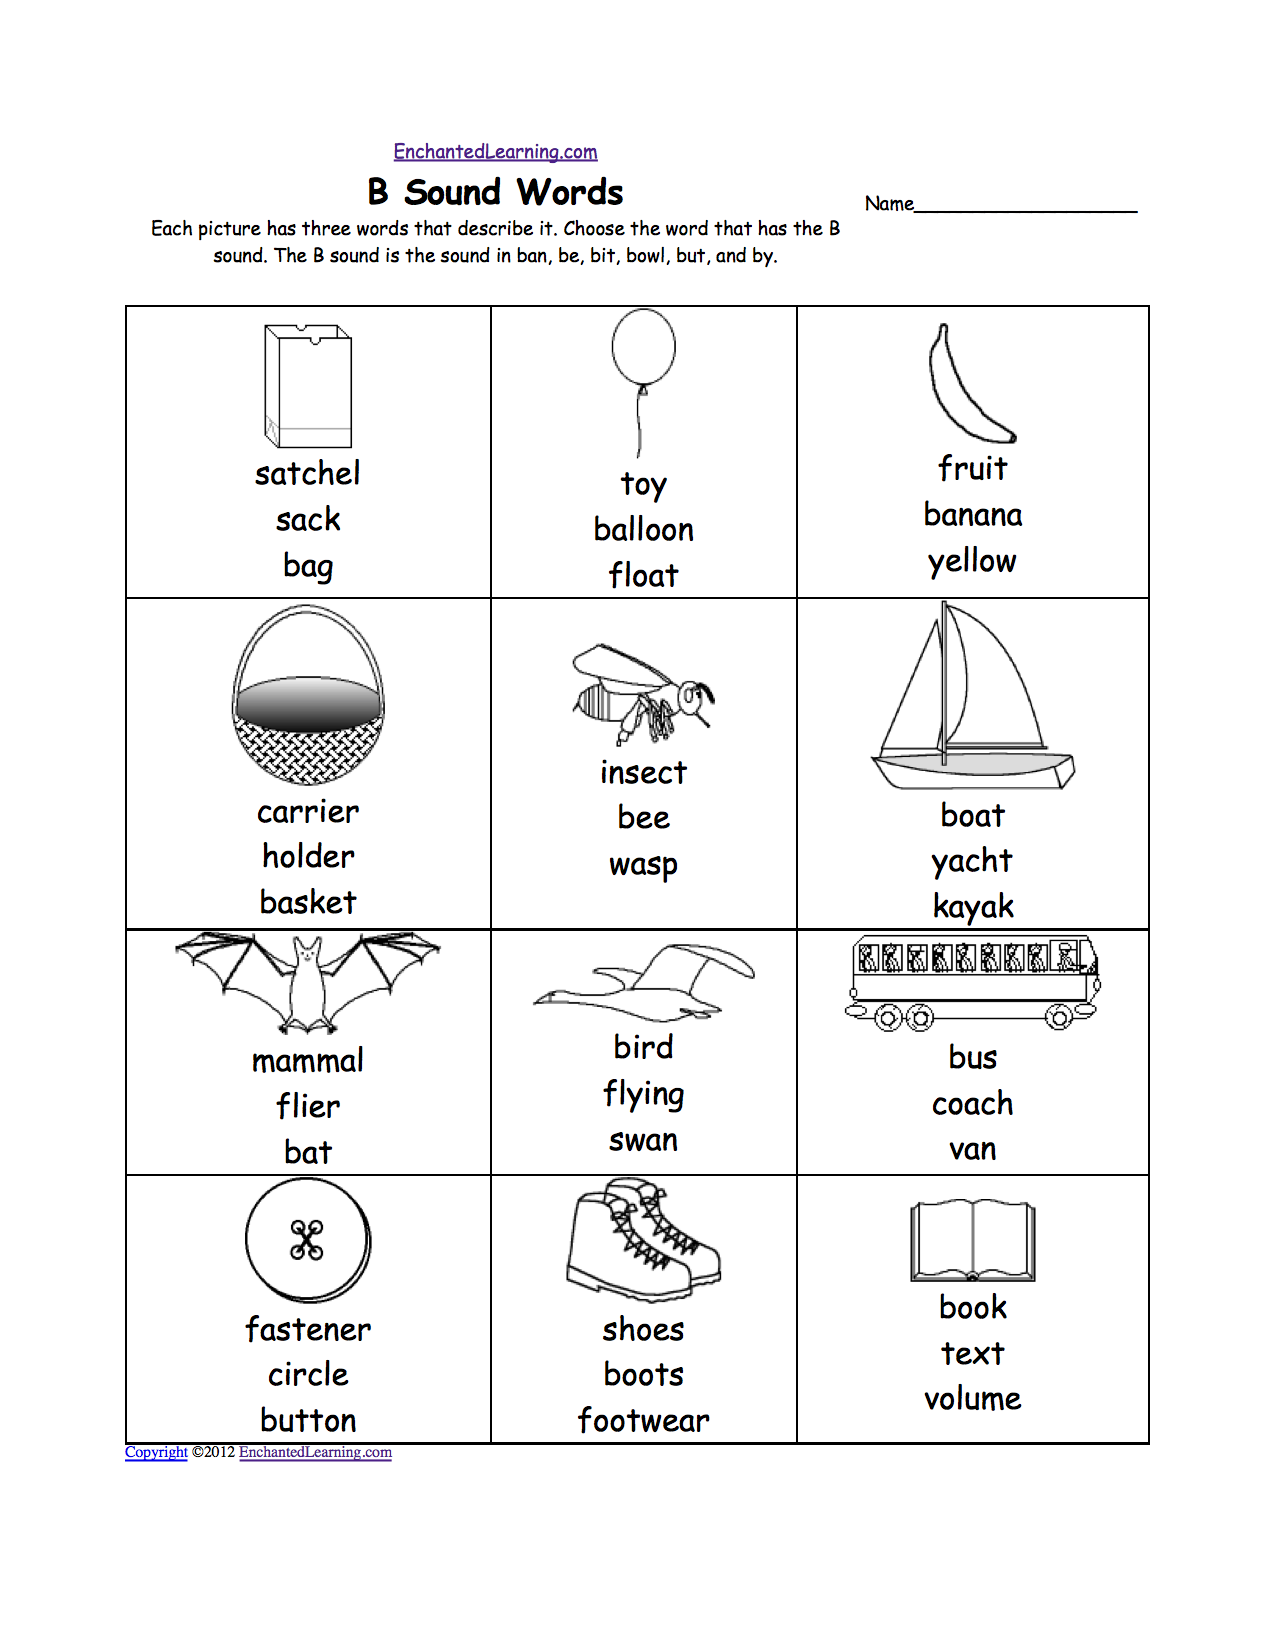 Proatmealus  Winning Phonics Worksheets Multiple Choice Worksheets To Print  With Entrancing Quotbquot Sound Phonics Worksheet Multiple Choice Each Picture Has Three Words That Describe It Choose The Word That Has A Quotbquot Sound The Quotbquot Sound Is The Sound  With Endearing Worksheet Of Letter A Also Reading Scales Worksheets In Addition Write Abc Worksheets And Abc Worksheets For Kids As Well As Rhyming Words Worksheet For Grade  Additionally Reading Comprehension For Nd Grade Free Worksheets From Enchantedlearningcom With Proatmealus  Entrancing Phonics Worksheets Multiple Choice Worksheets To Print  With Endearing Quotbquot Sound Phonics Worksheet Multiple Choice Each Picture Has Three Words That Describe It Choose The Word That Has A Quotbquot Sound The Quotbquot Sound Is The Sound  And Winning Worksheet Of Letter A Also Reading Scales Worksheets In Addition Write Abc Worksheets From Enchantedlearningcom